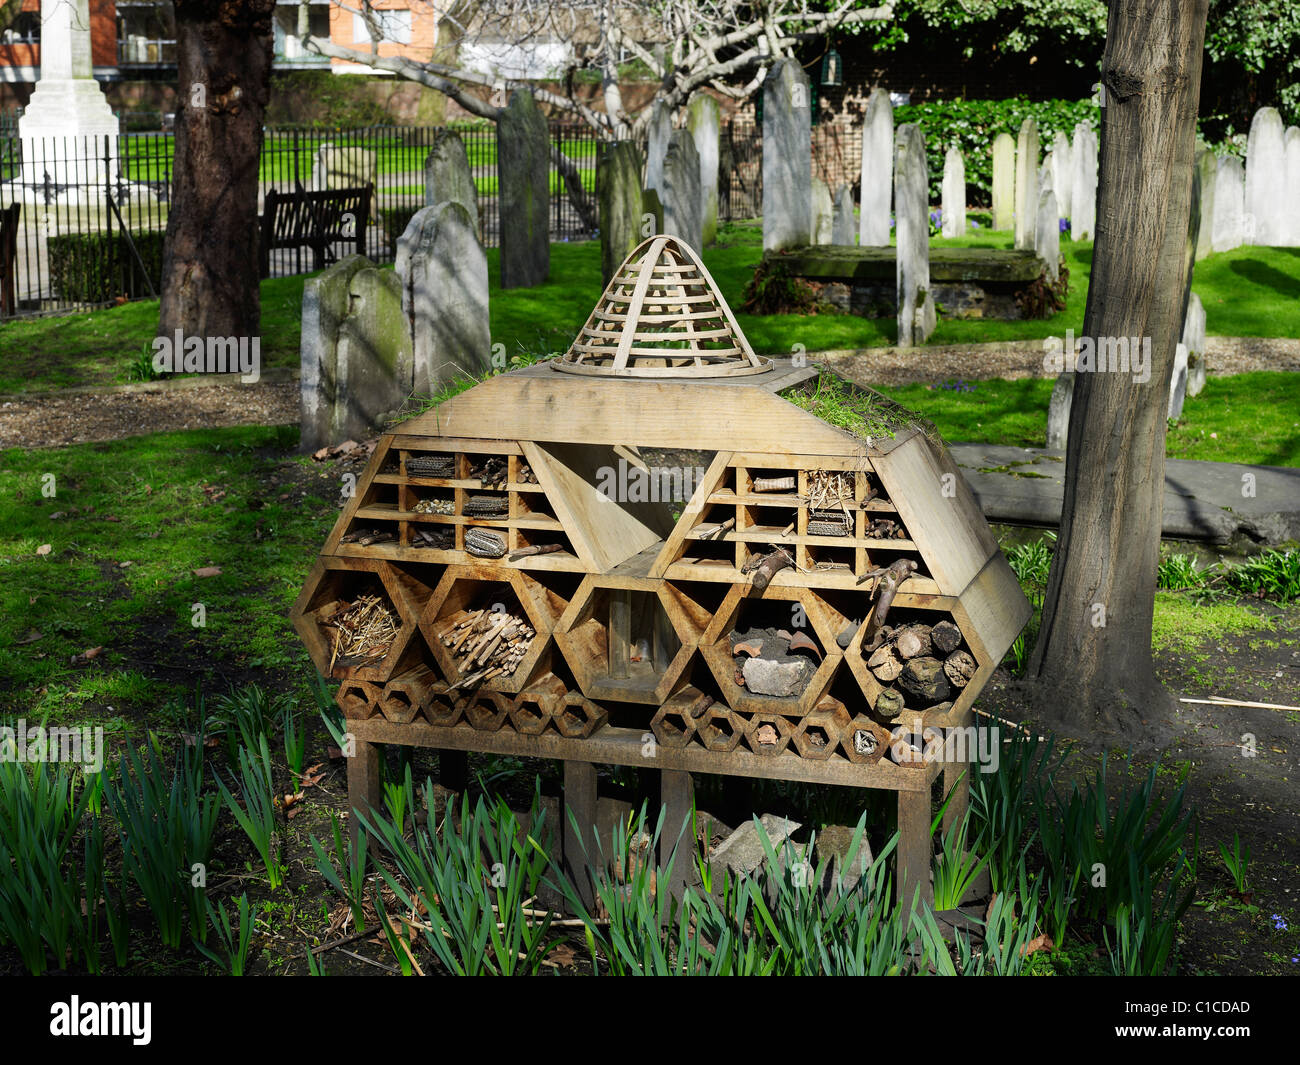 InnVertebrate in Bunhill Fields by ORTLOS providing invertebrates with habitat of different sized cavities - Stock Image